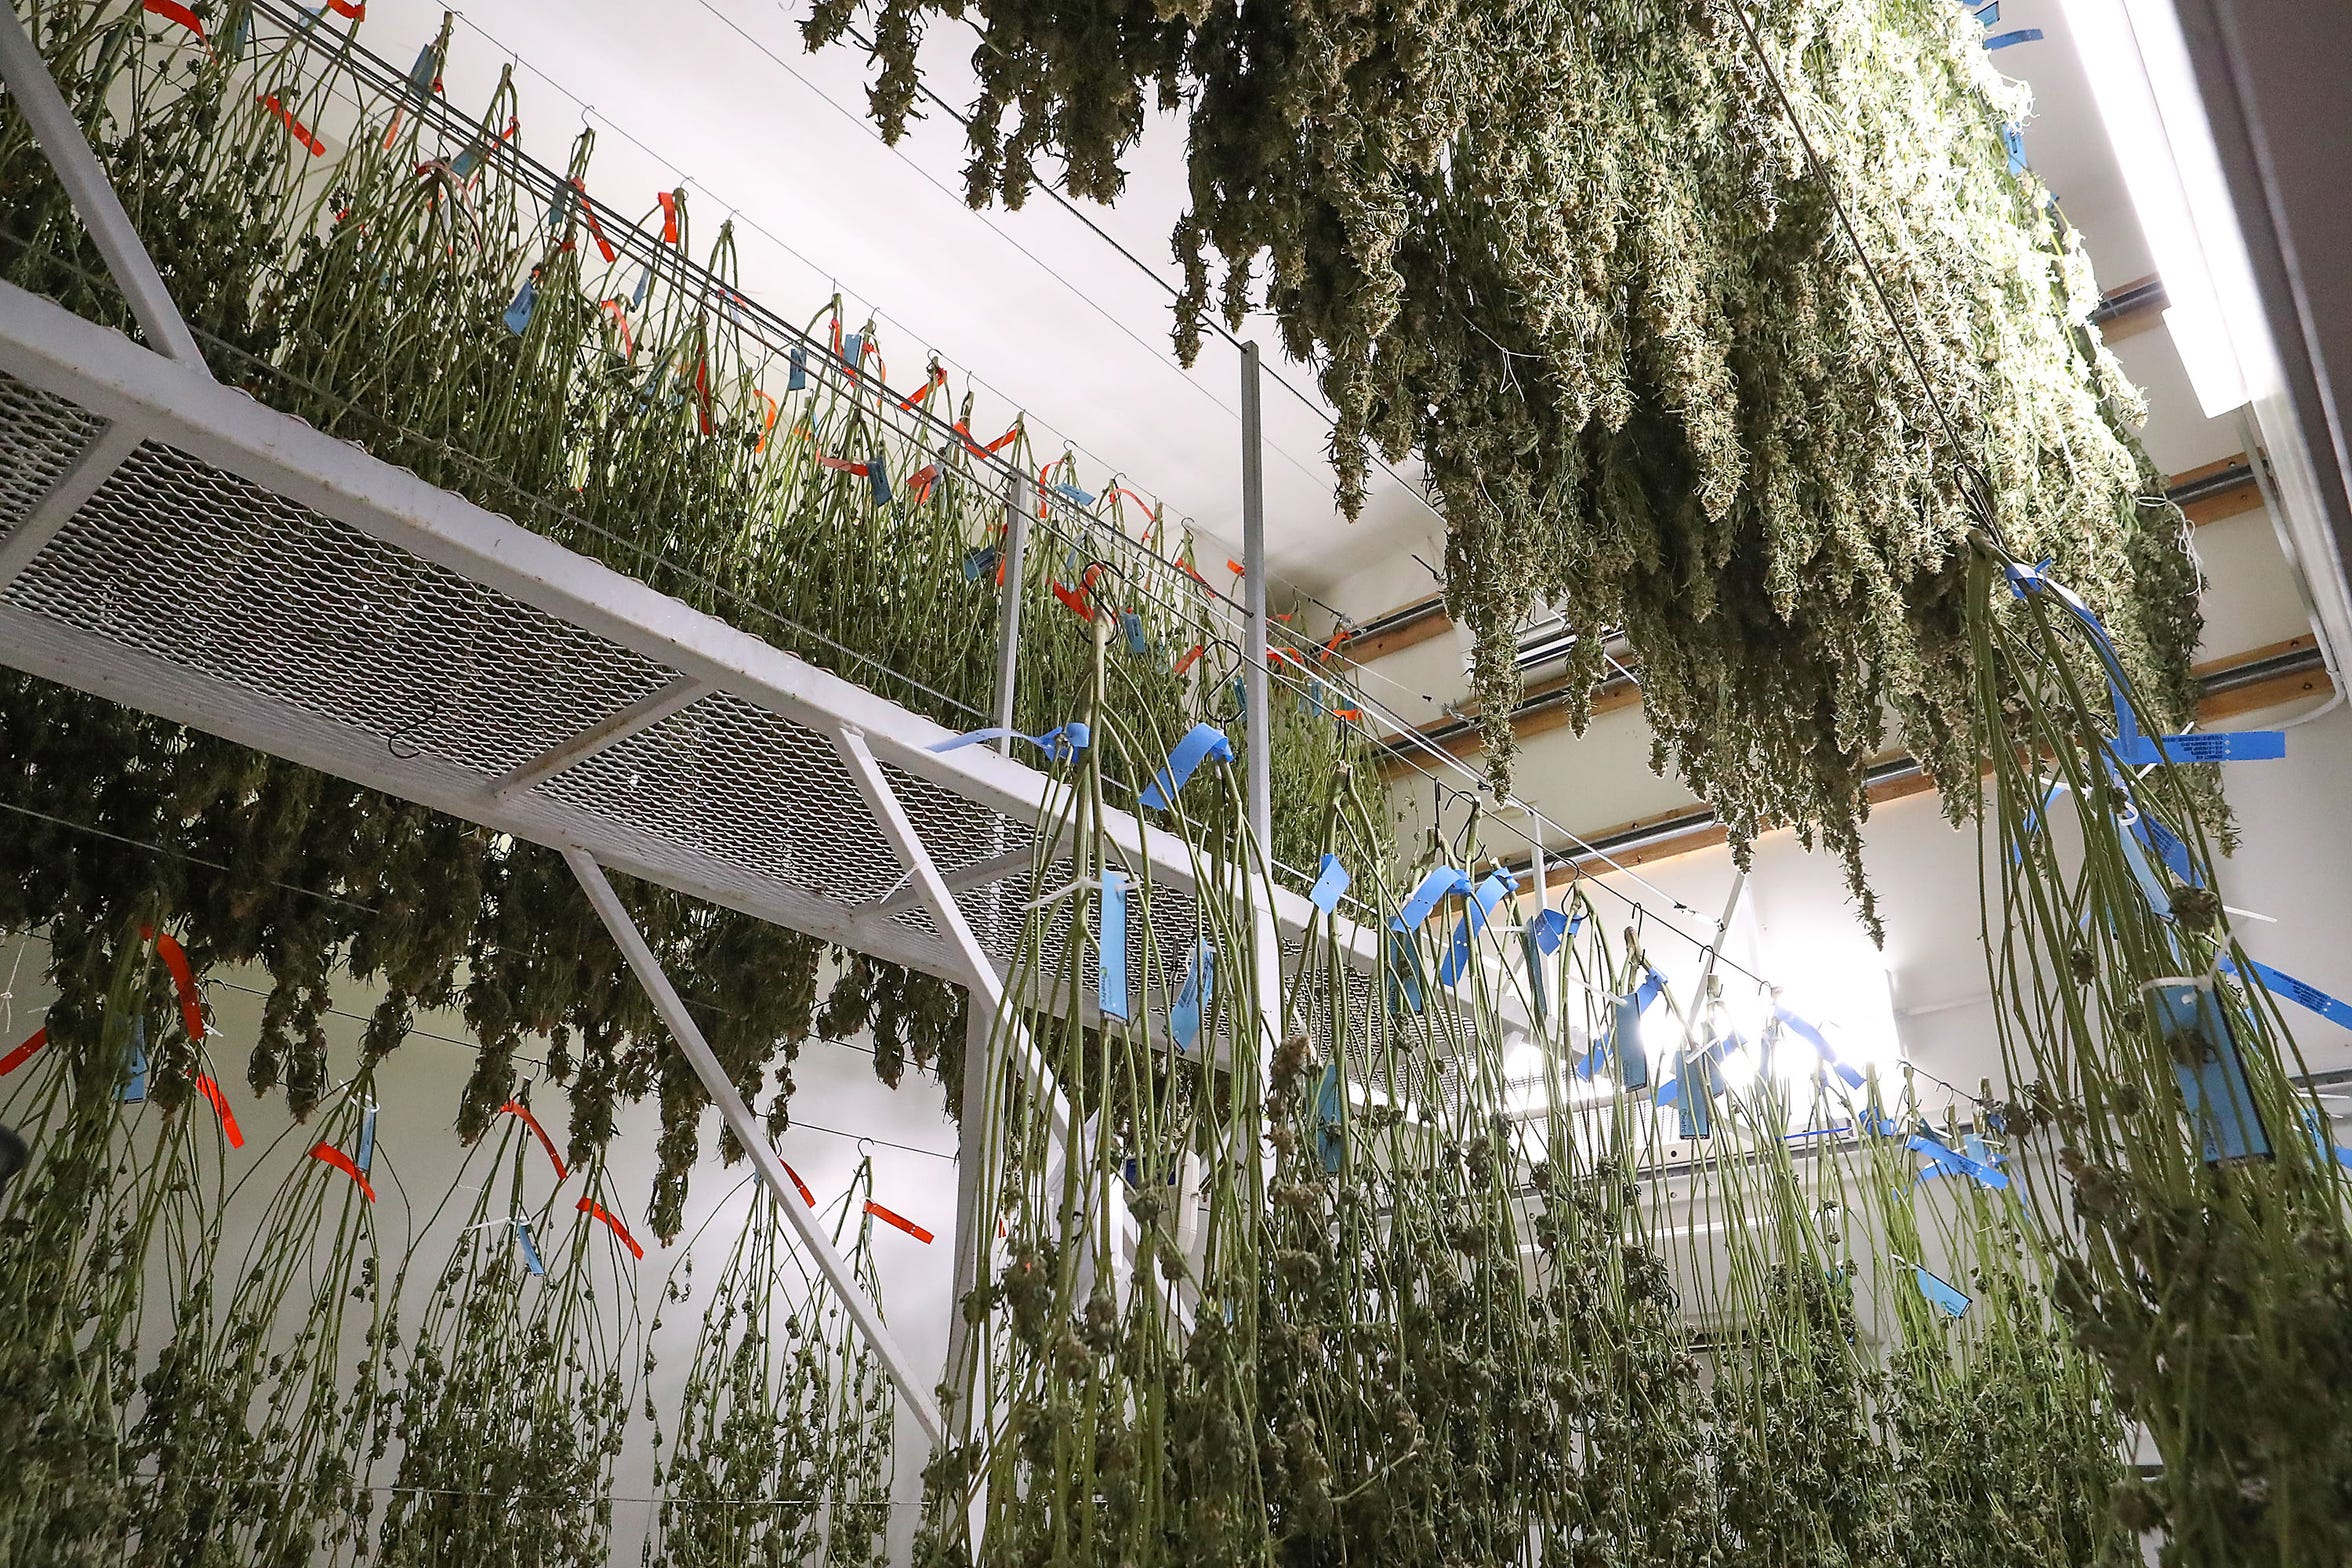 Harvested marijuana is hung upside down to dry inside the Canndescent cannabis cultivation facility in Desert Hot Springs, September 17, 2019.